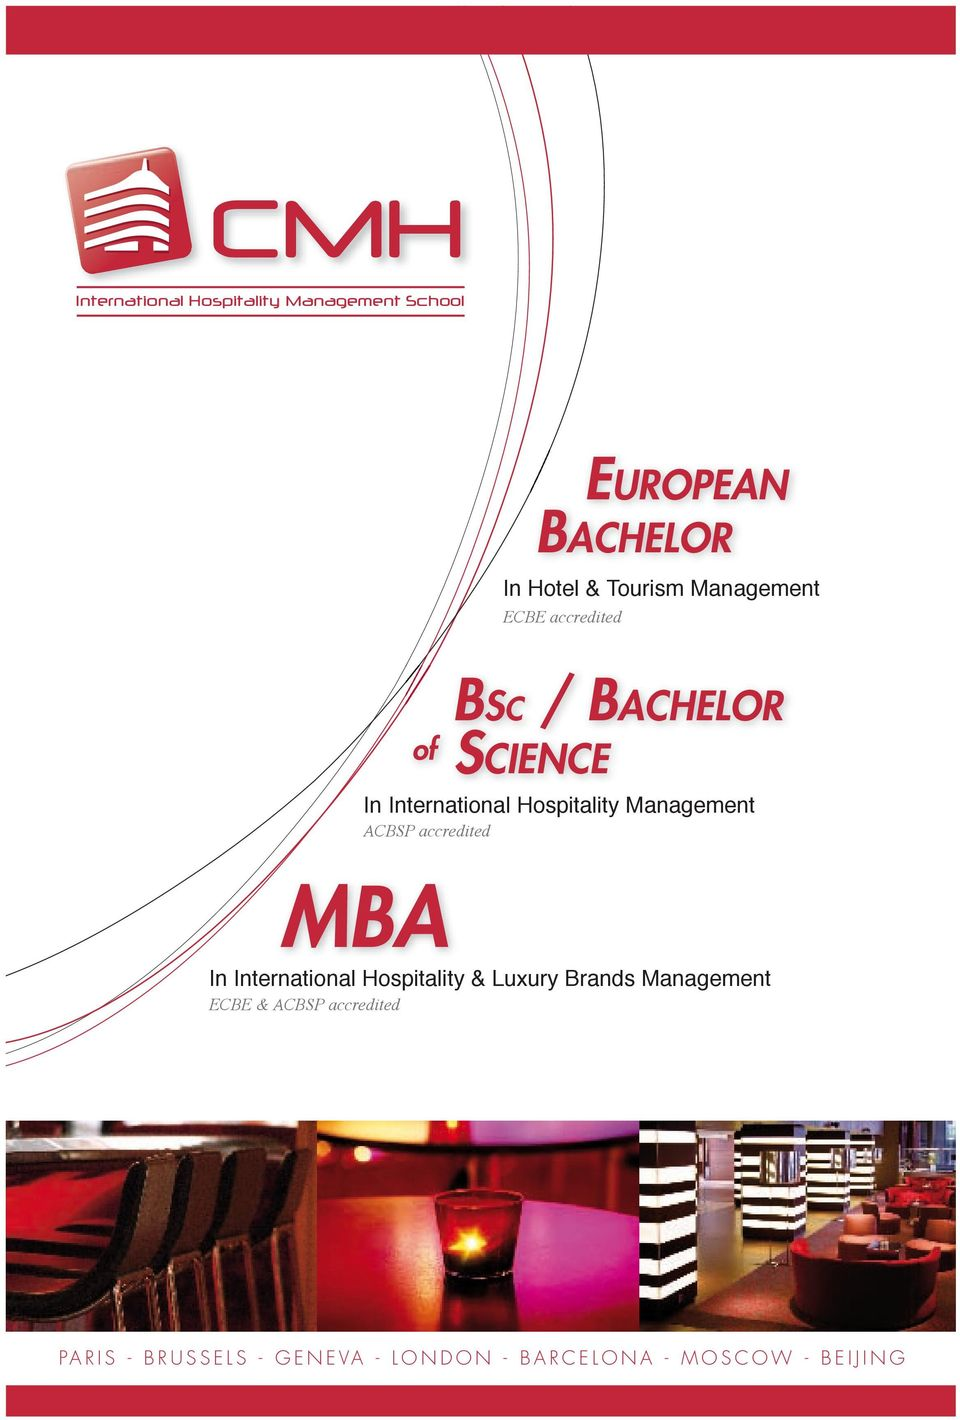 Management ACBSP accredited MBA In International Hospitality & Luxury Brands